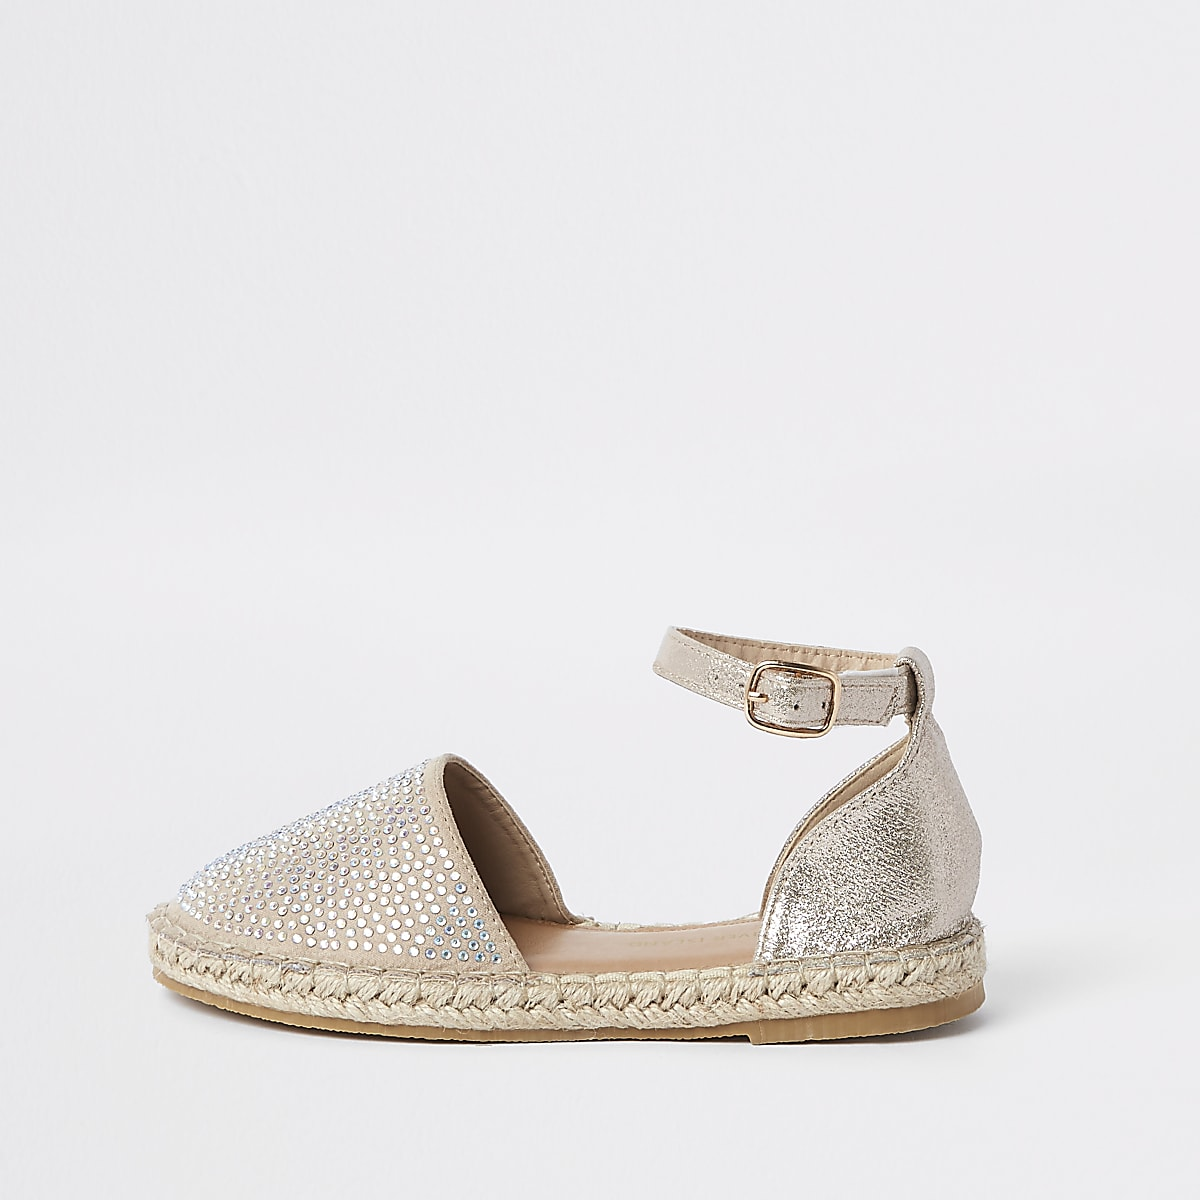 Girls gold embellished espadrille sandals